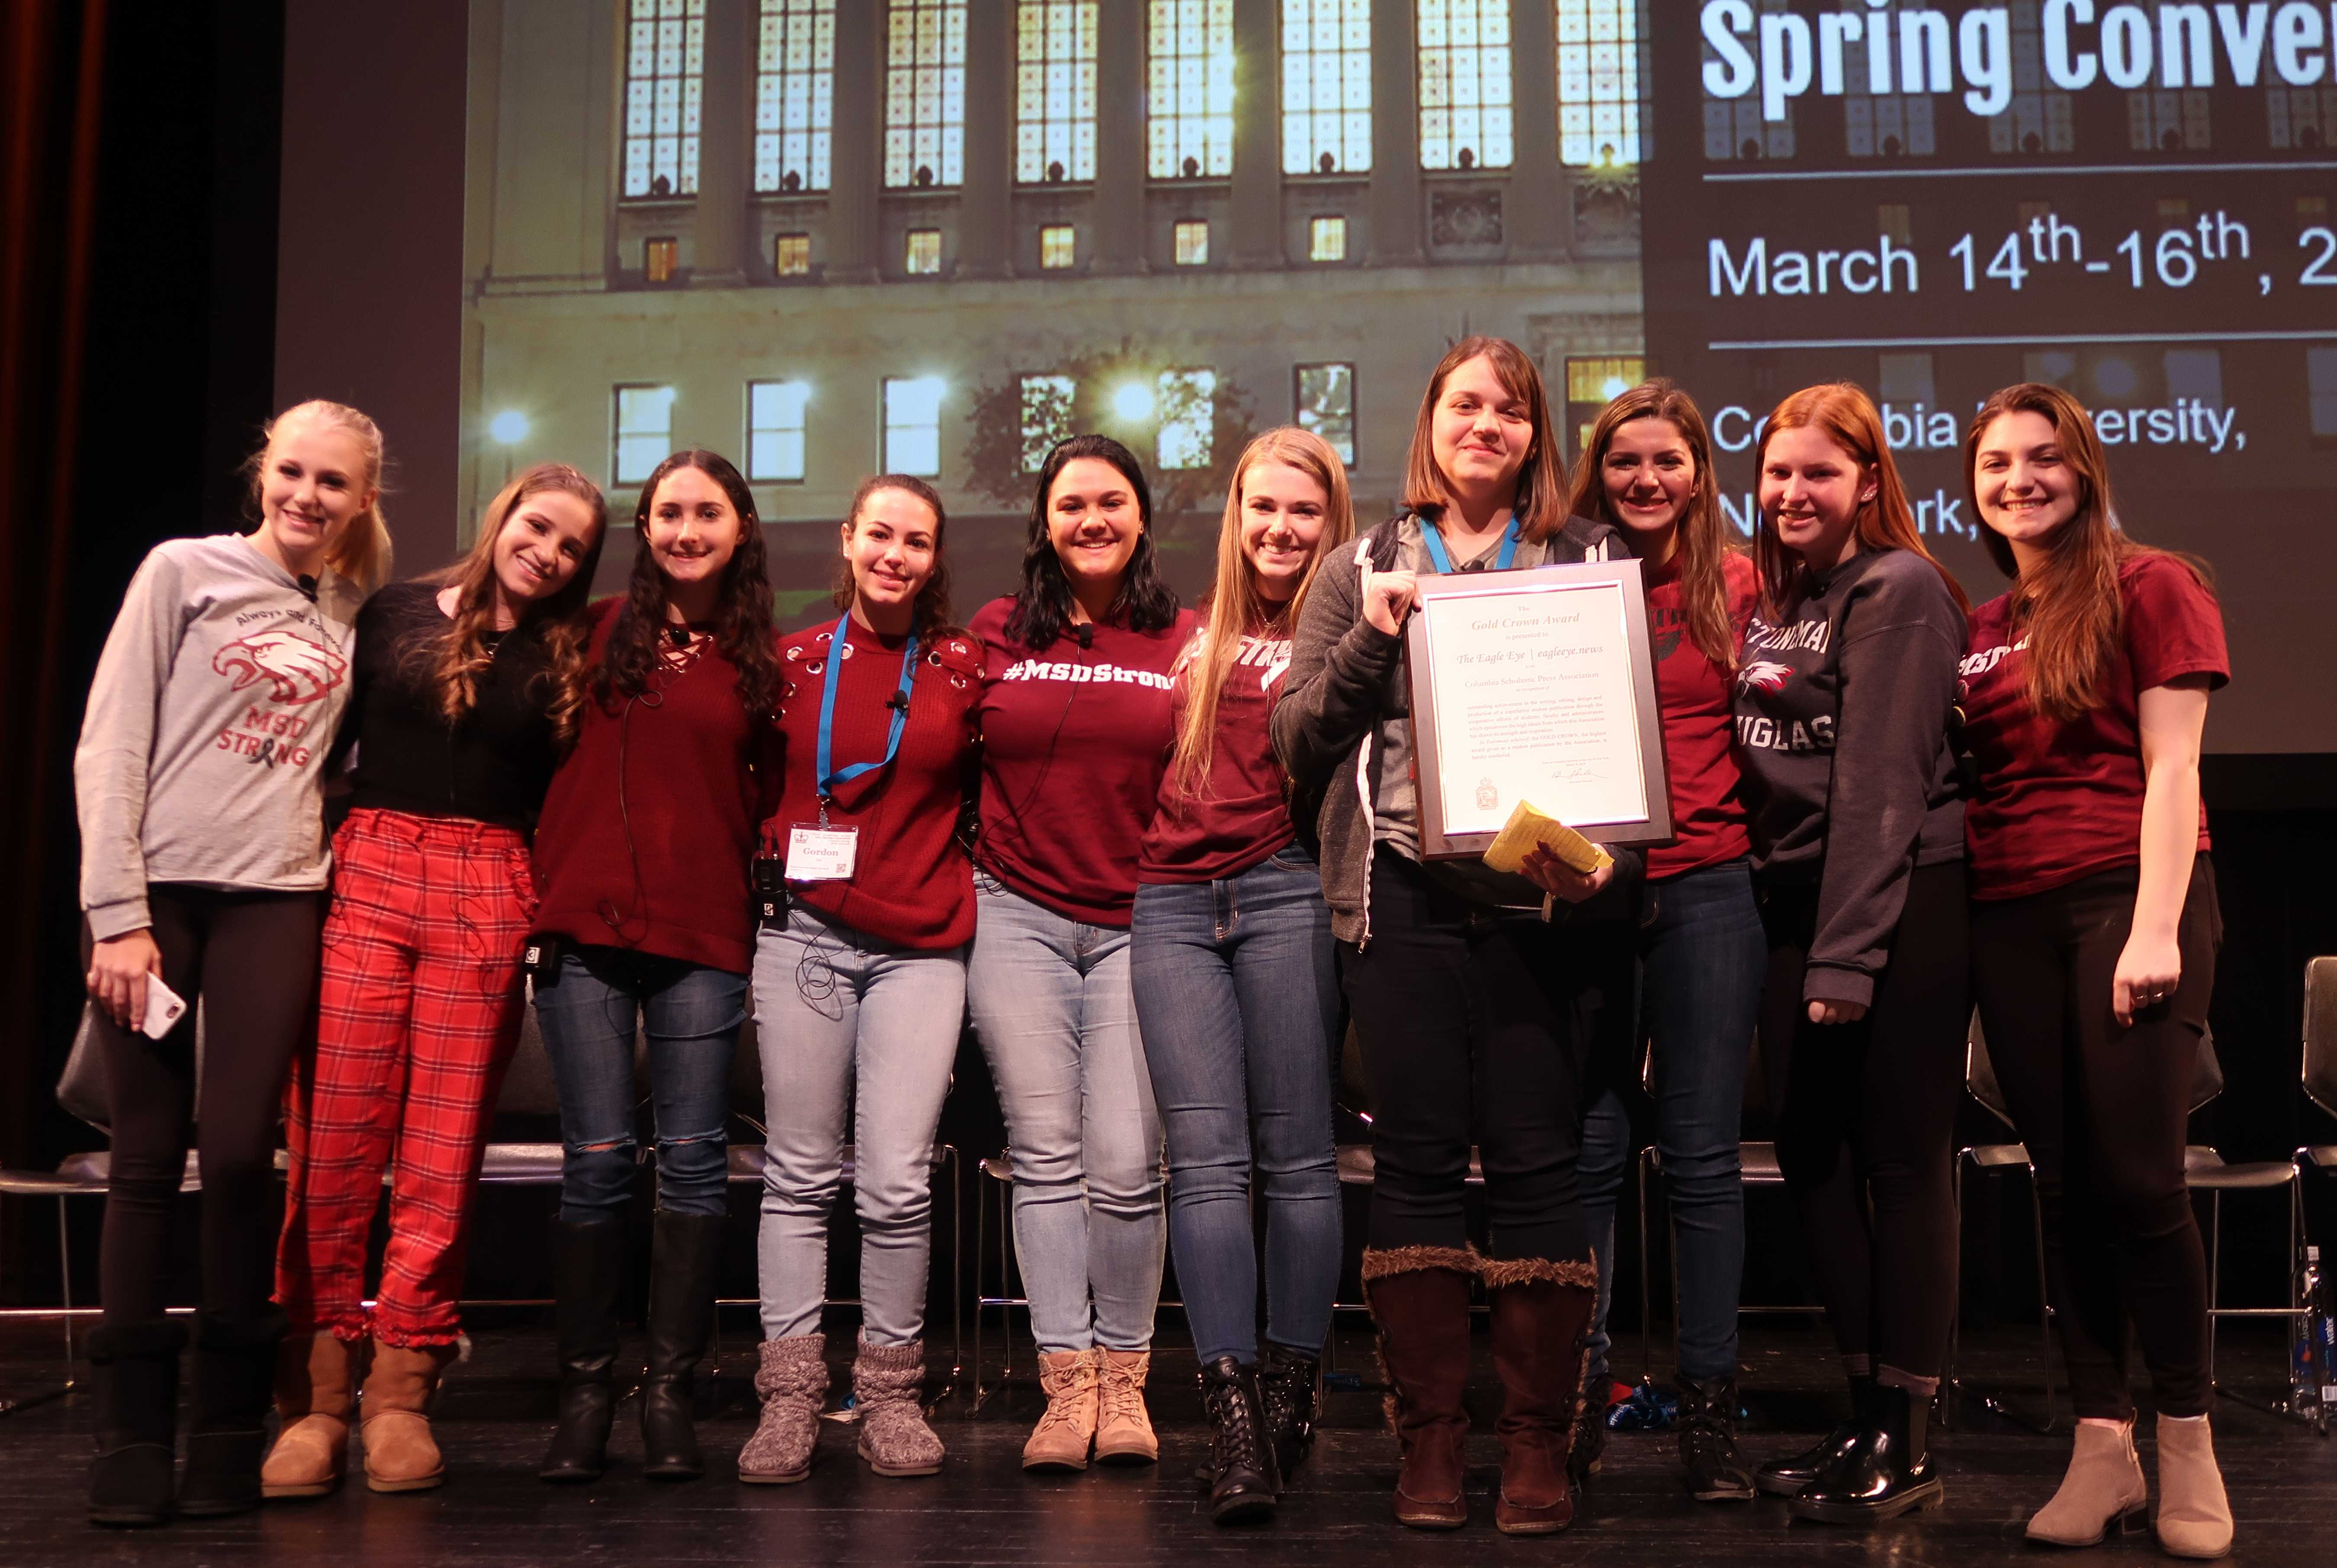 The Eagle Eye staff of Marjorie Stoneman Douglas High School after receiving their gold crown award at the Columbia Scholastic Press Association (Courtesy of M. Simons, CSPA).